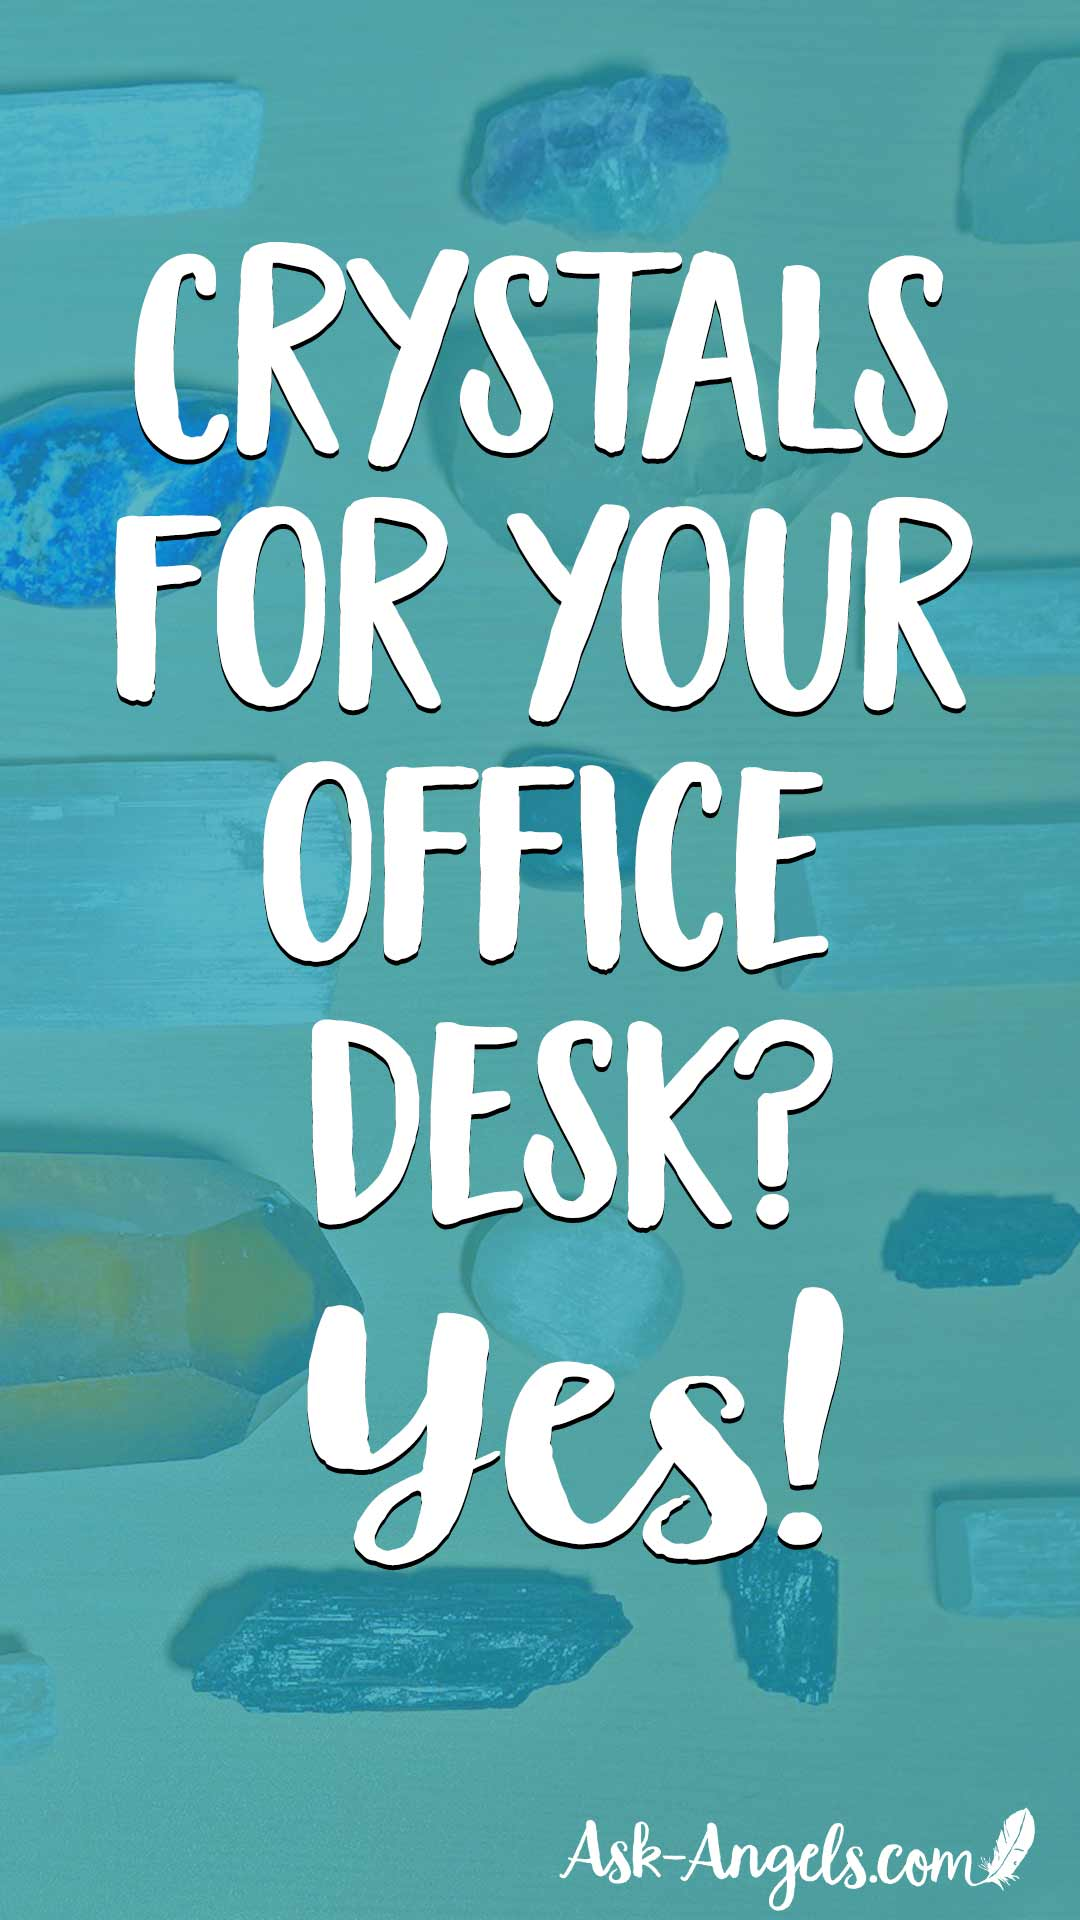 Crystals for Your Office Desk - Top 9 Desk Crystals! - Ask